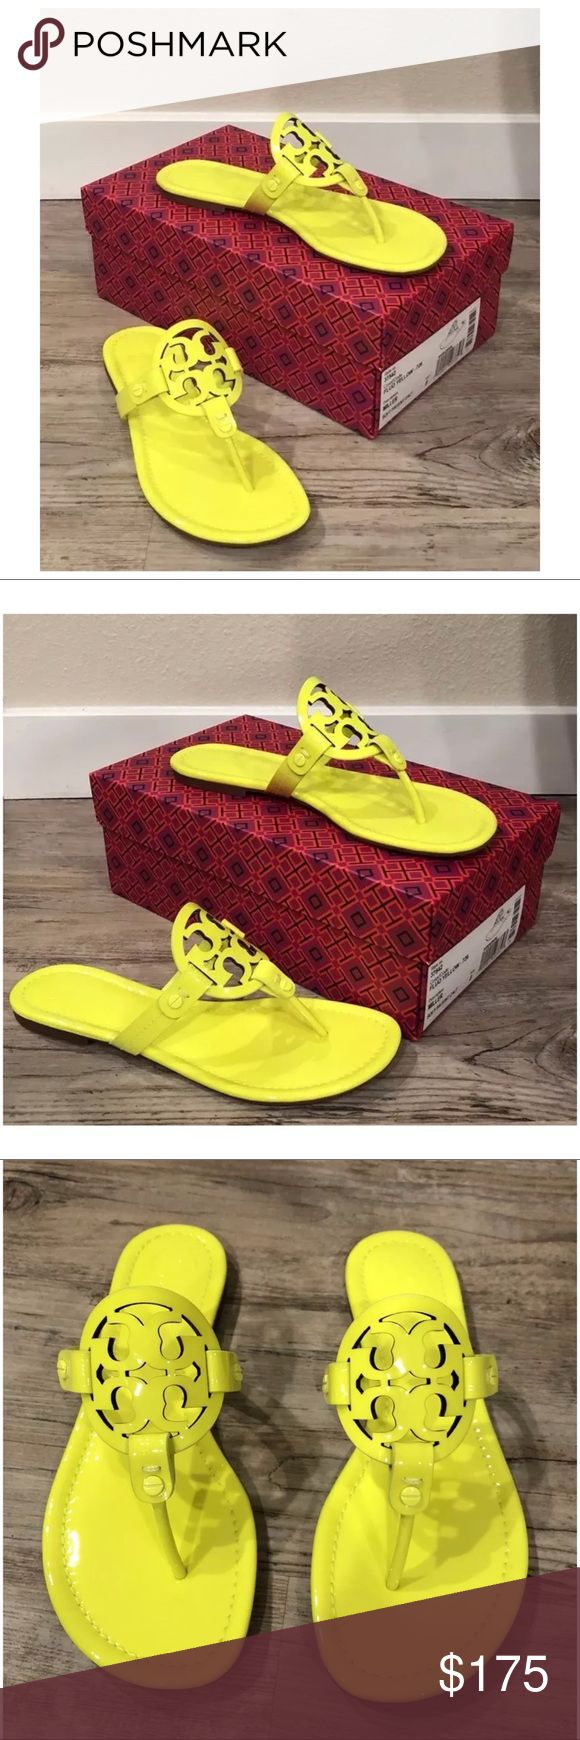 NEW Tory Burch Miller Fluo Yellow Flip Flops NEW Tory Burch Miller Fluo Yellow Patent Leather Logo Sandals/Flip Flops Size 8~  Size 8  Item condition/notes: New in box. Does not have dust bag. Fluo yellow Price is firm Tory Burch Shoes Sandals